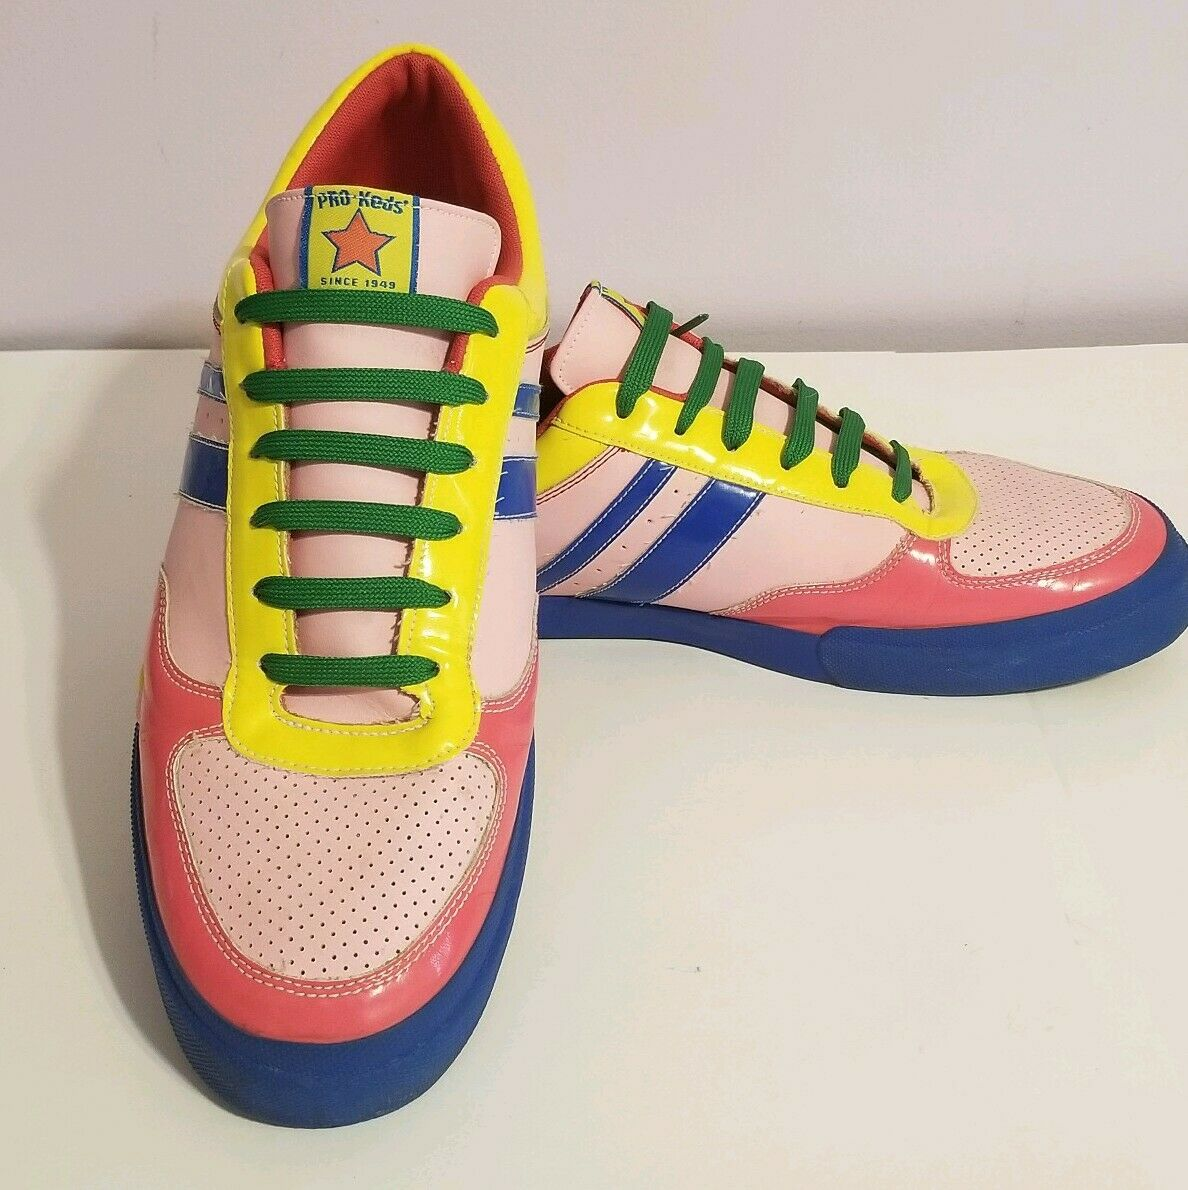 Pro Keds Mens shoes Size 14 Retro 80s colors Pink bluee Yellow Summer 2007 Collec